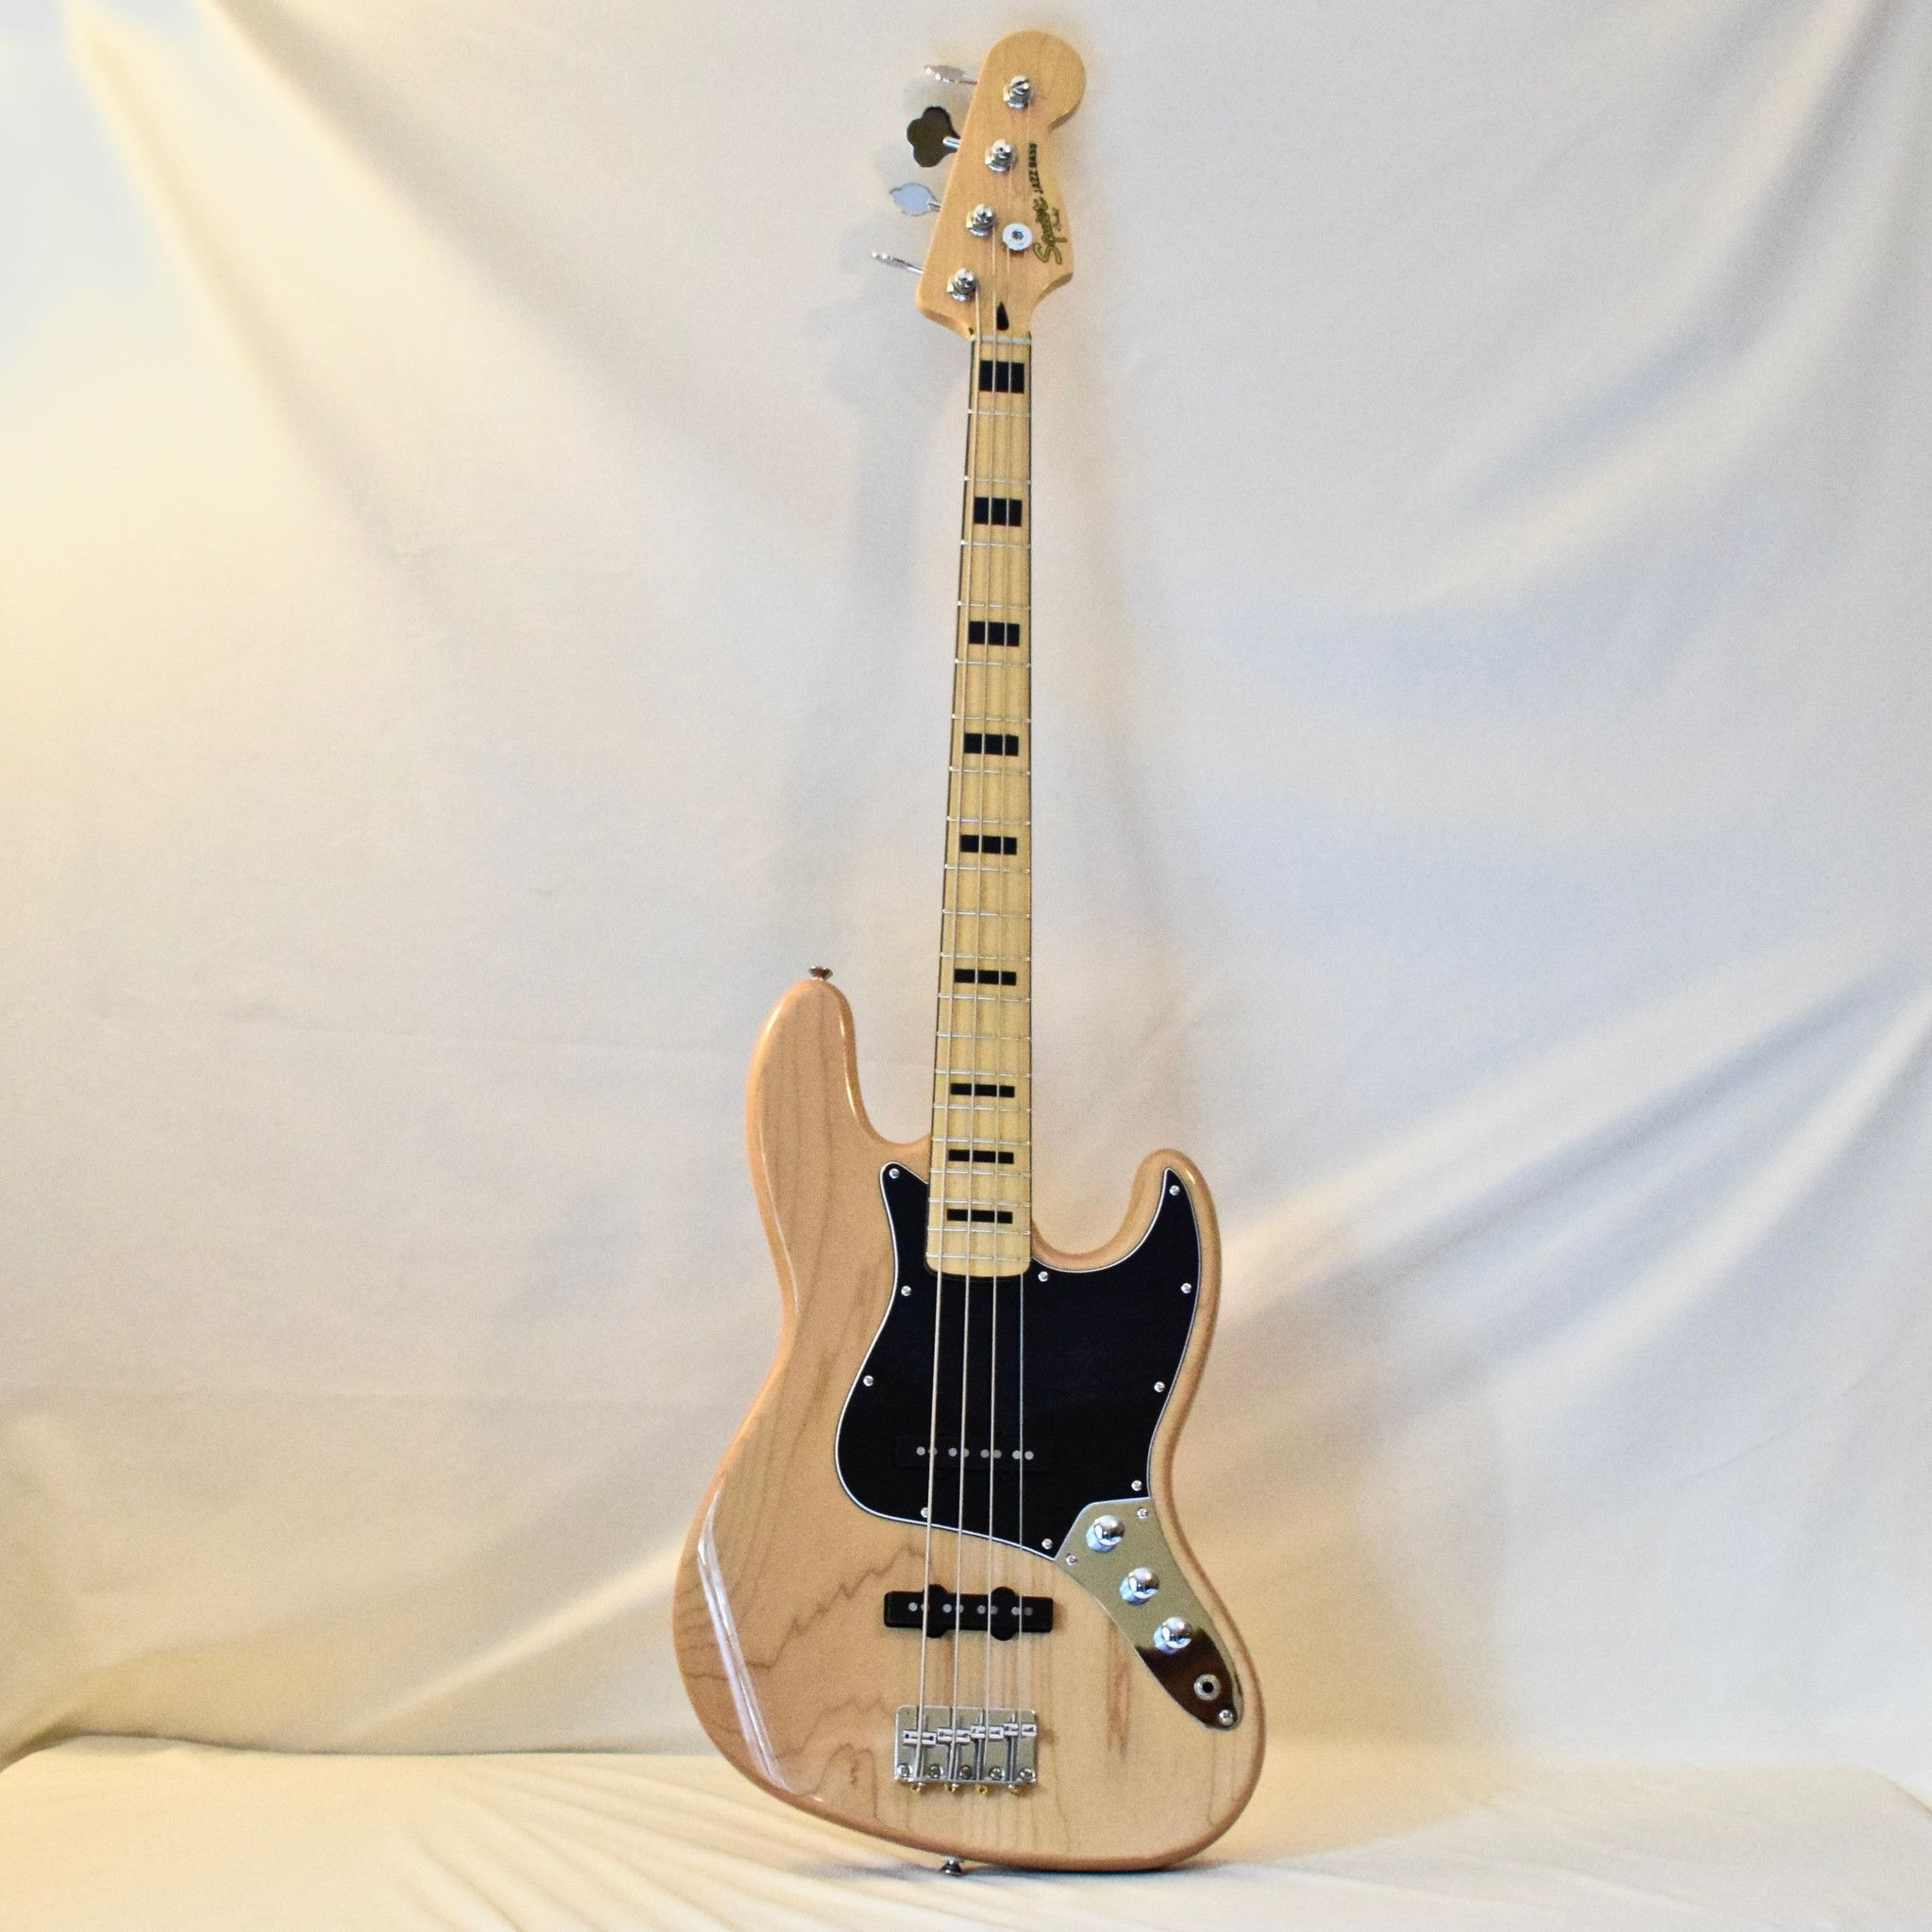 My eb bass squier vintage modified jazz bass - Fender Squier Vintage Modified Jazz Bass 70s